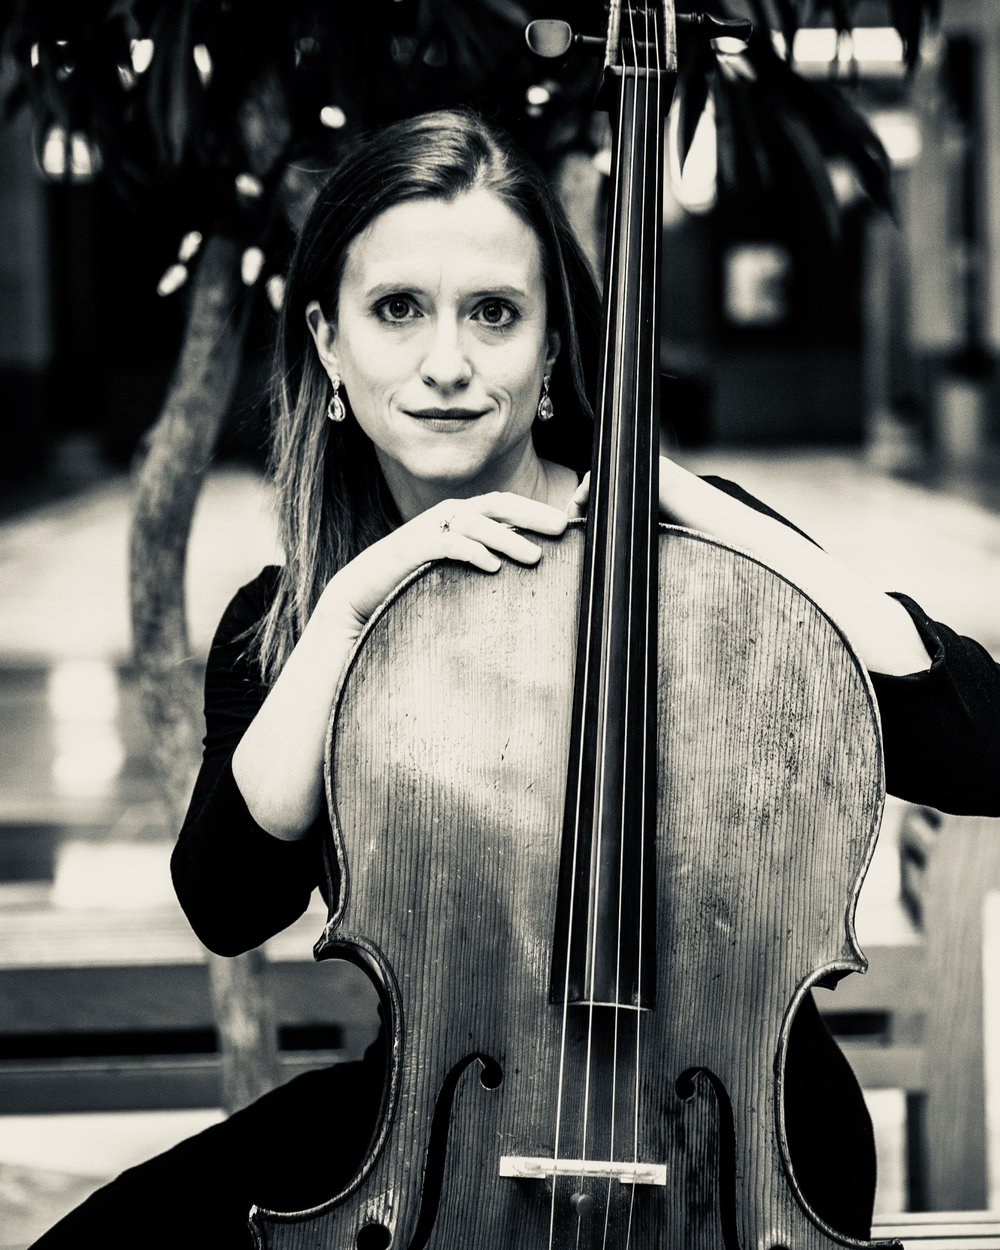 meran currie cello.jpg